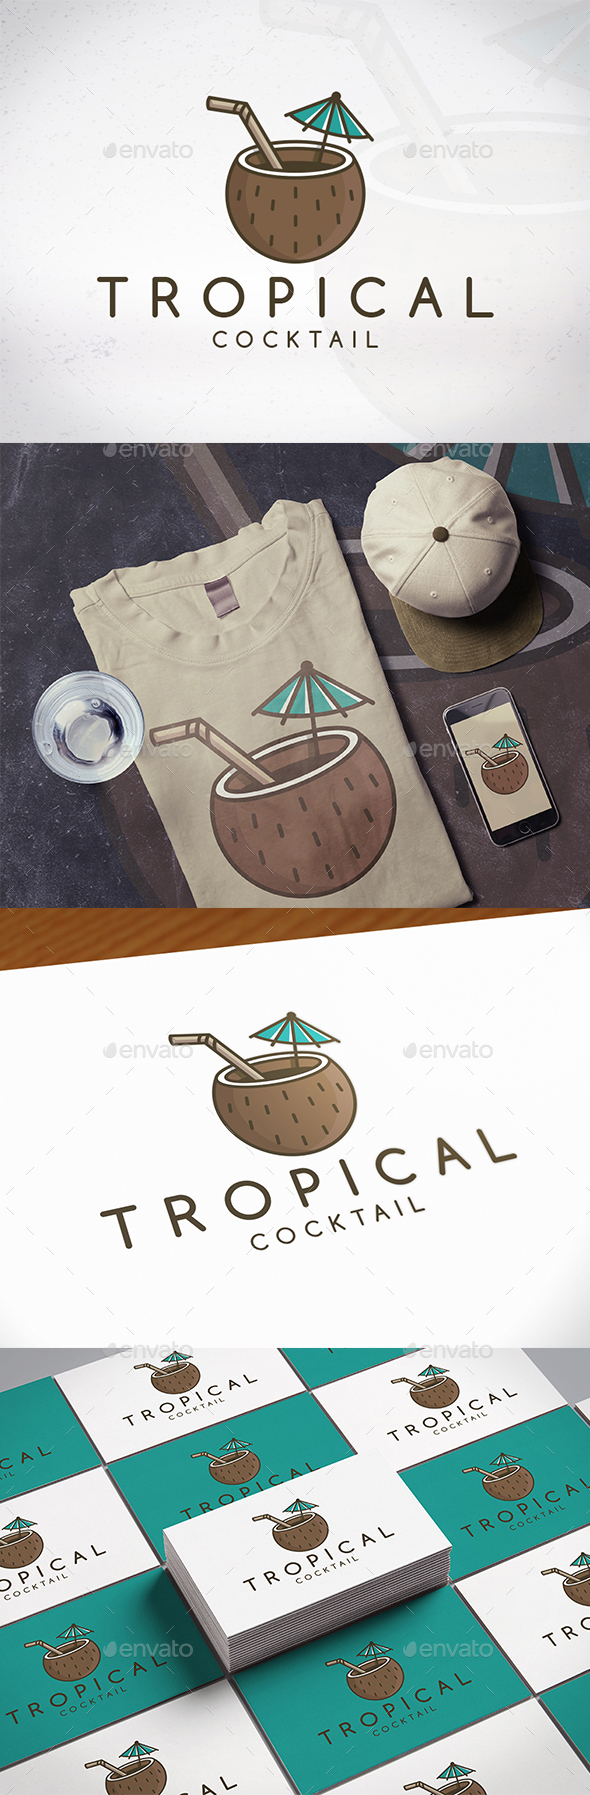 Tropical Cocktail Logo Template - Food Logo Templates